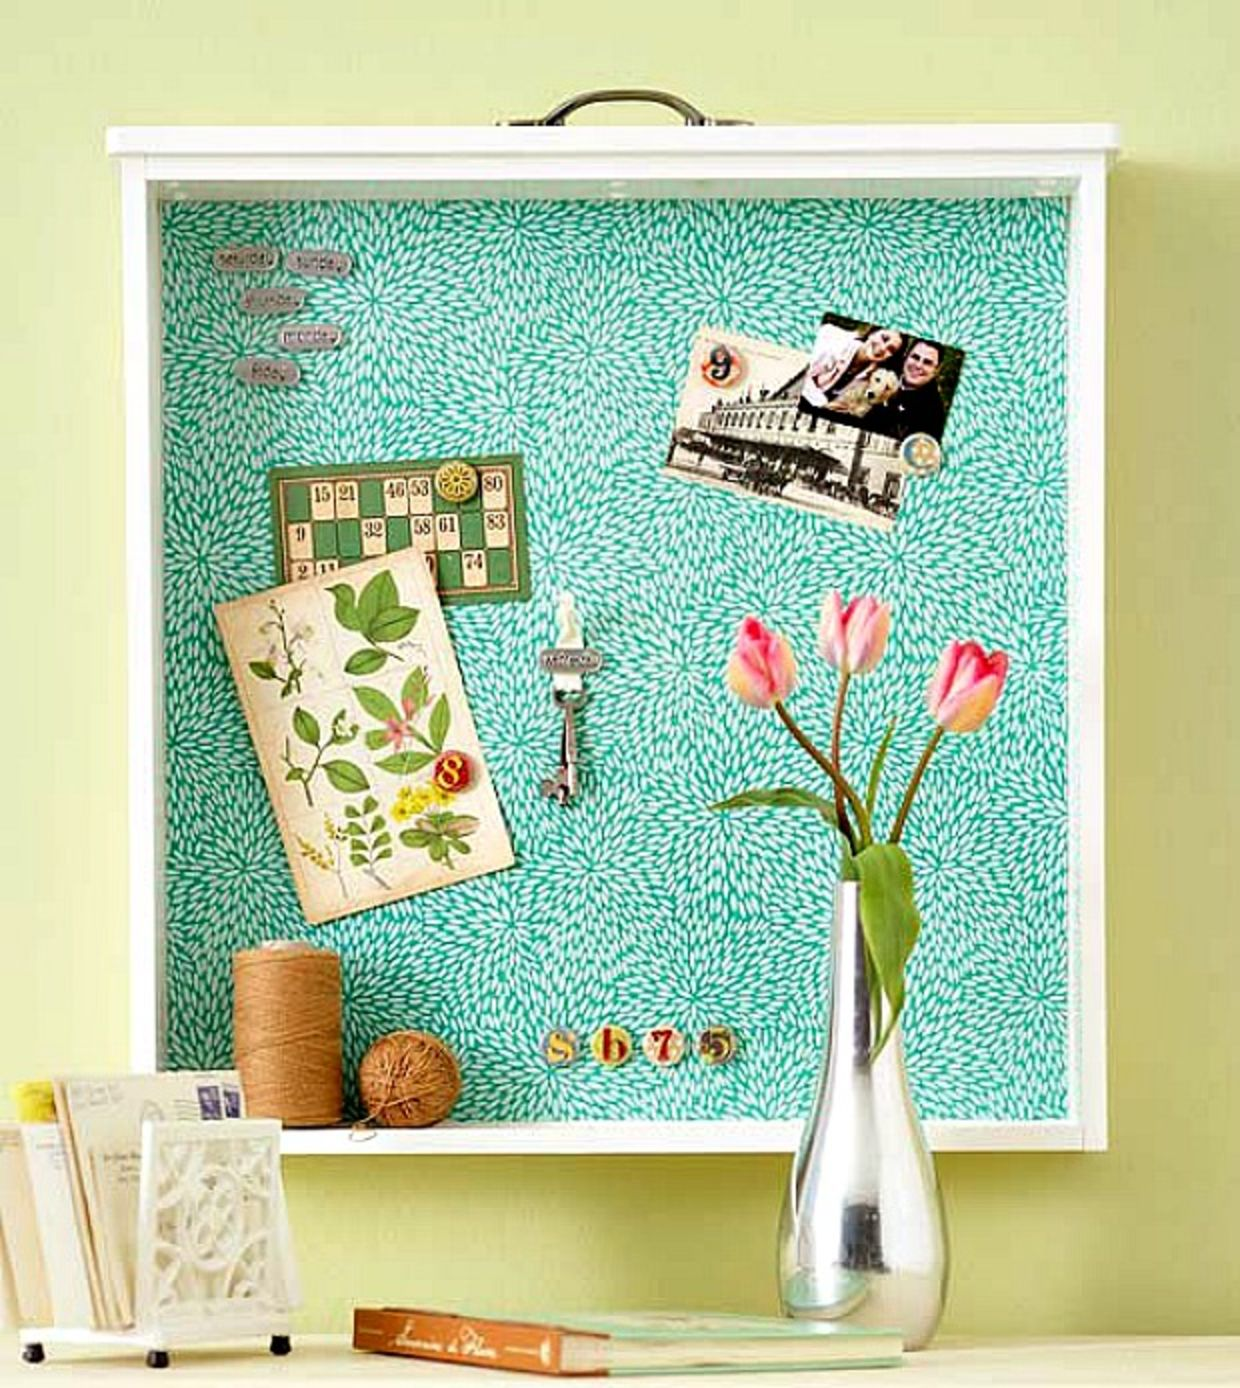 DIY Home Decor Ideas For Upycling